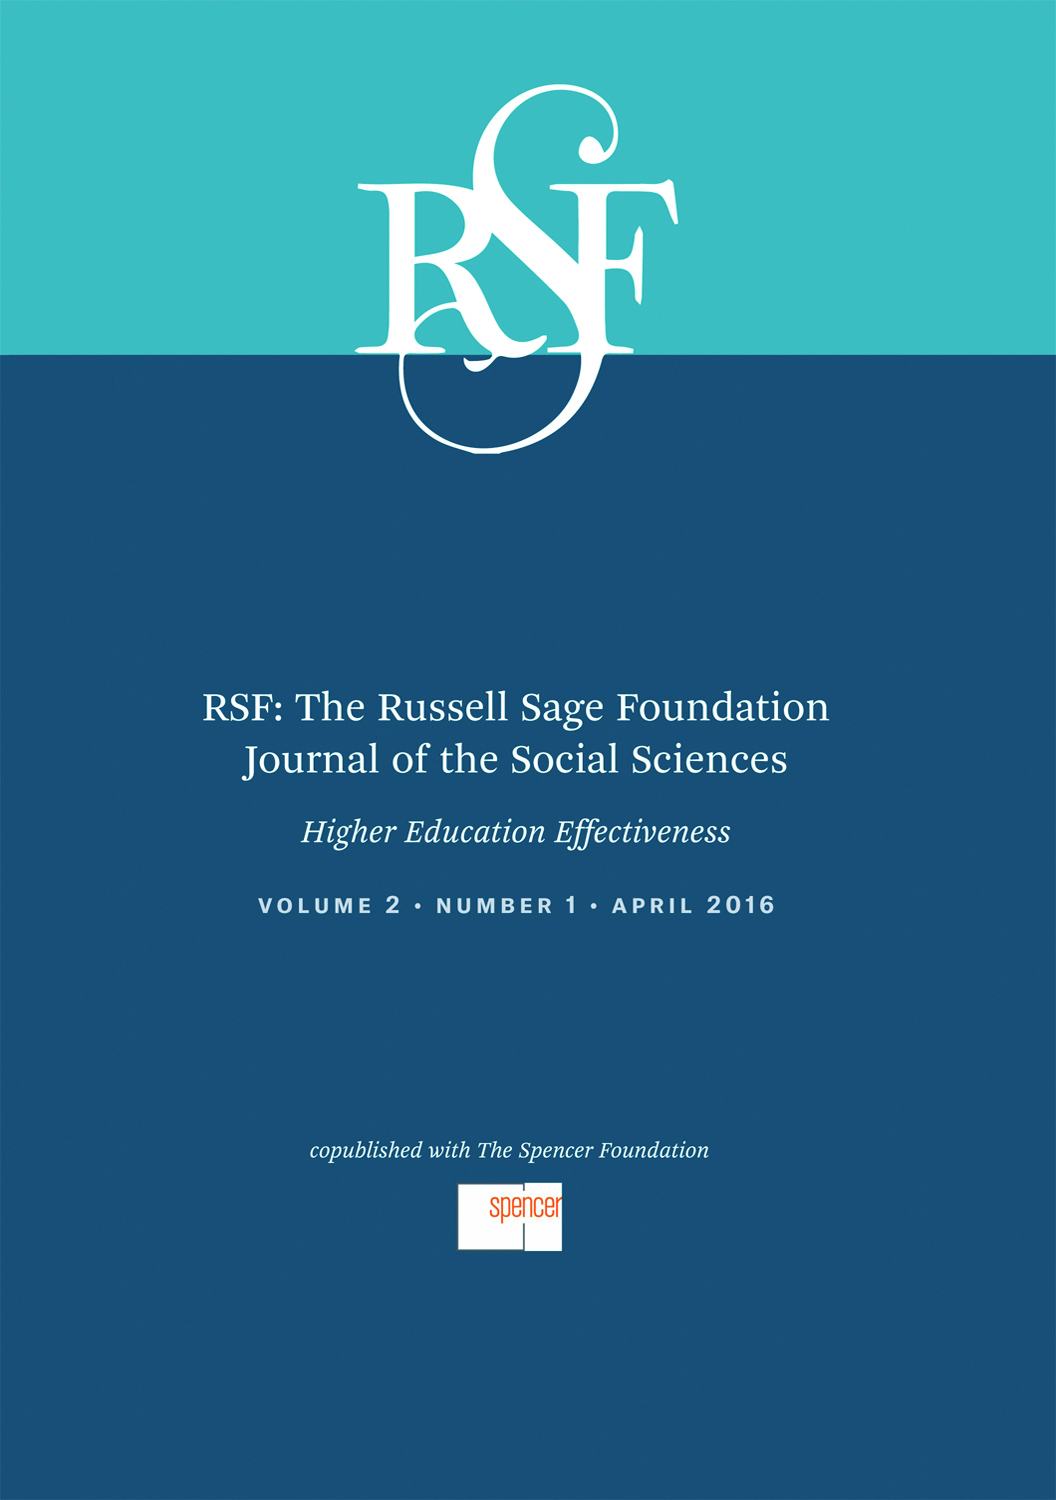 U S  Higher Education Effectiveness | RSF: The Russell Sage